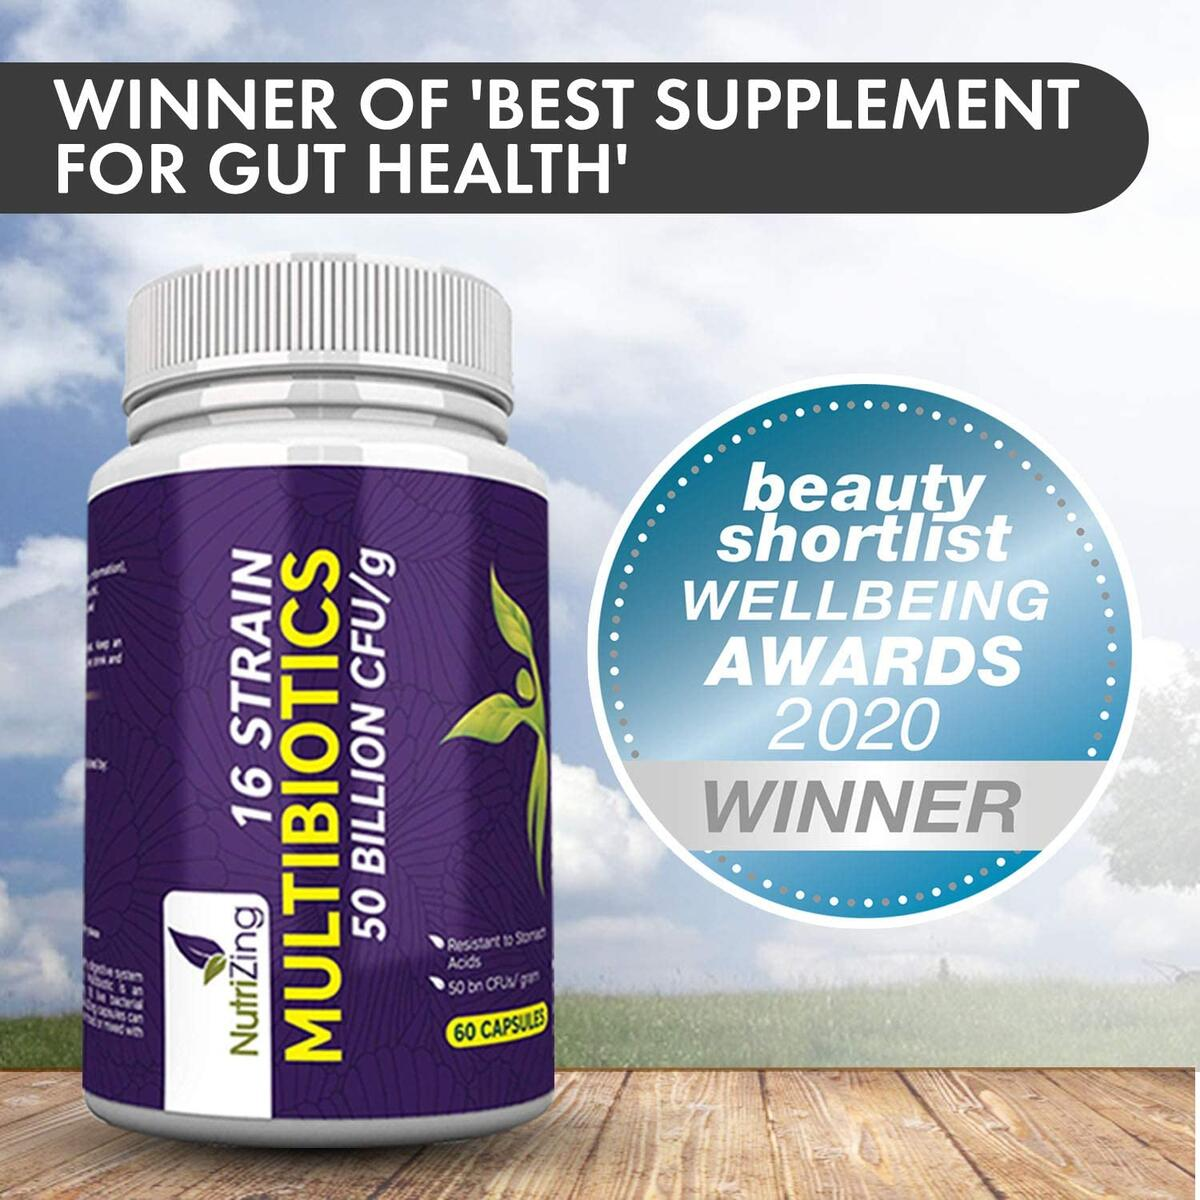 Advanced Probiotics with 16 Live Bacterial Strains - 30 Billion CFU per Serving - Best Supplement for Gut Health Award - Vegan Time Release Capsules by NutriZing - Shelf Stable - Contains Acidophilus